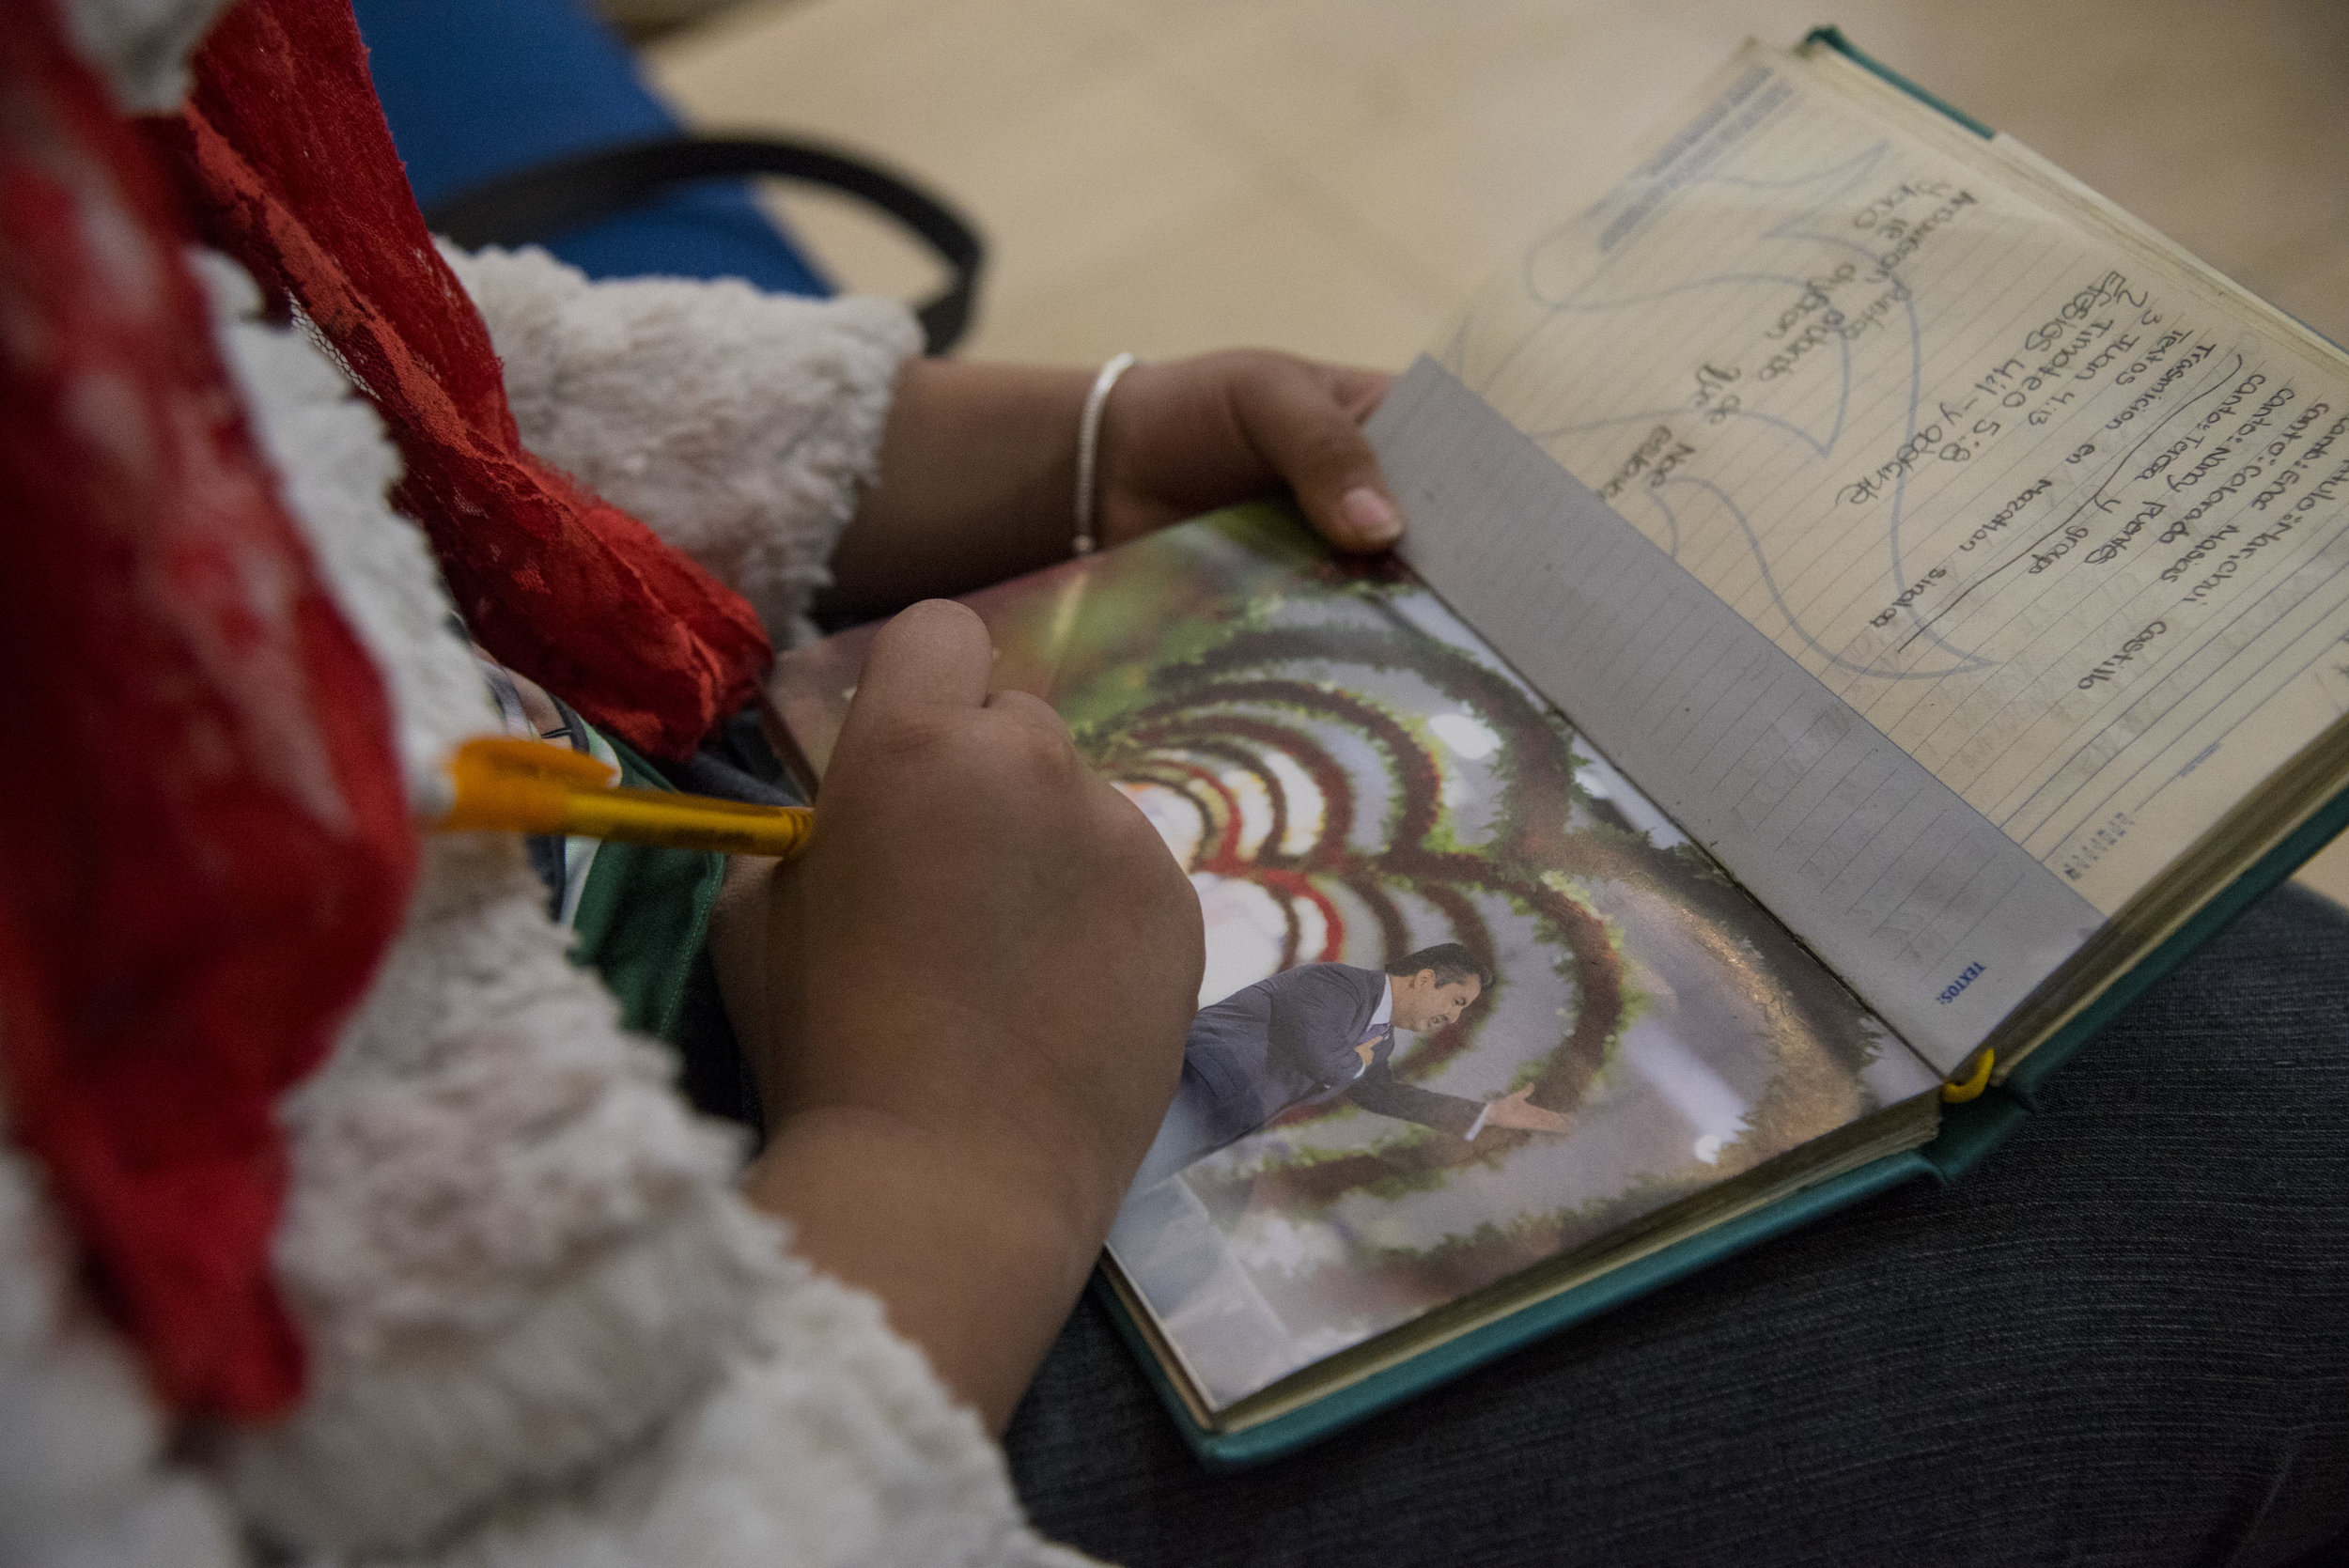 Hillary Guillen, 11, opens her notebook to her favorite picture of Naasón Joaquín García, the leader of the international Light of the World church. Members of the church believe that García is a Living Apostle called by God to lead His people during the restoration of the primitive church.